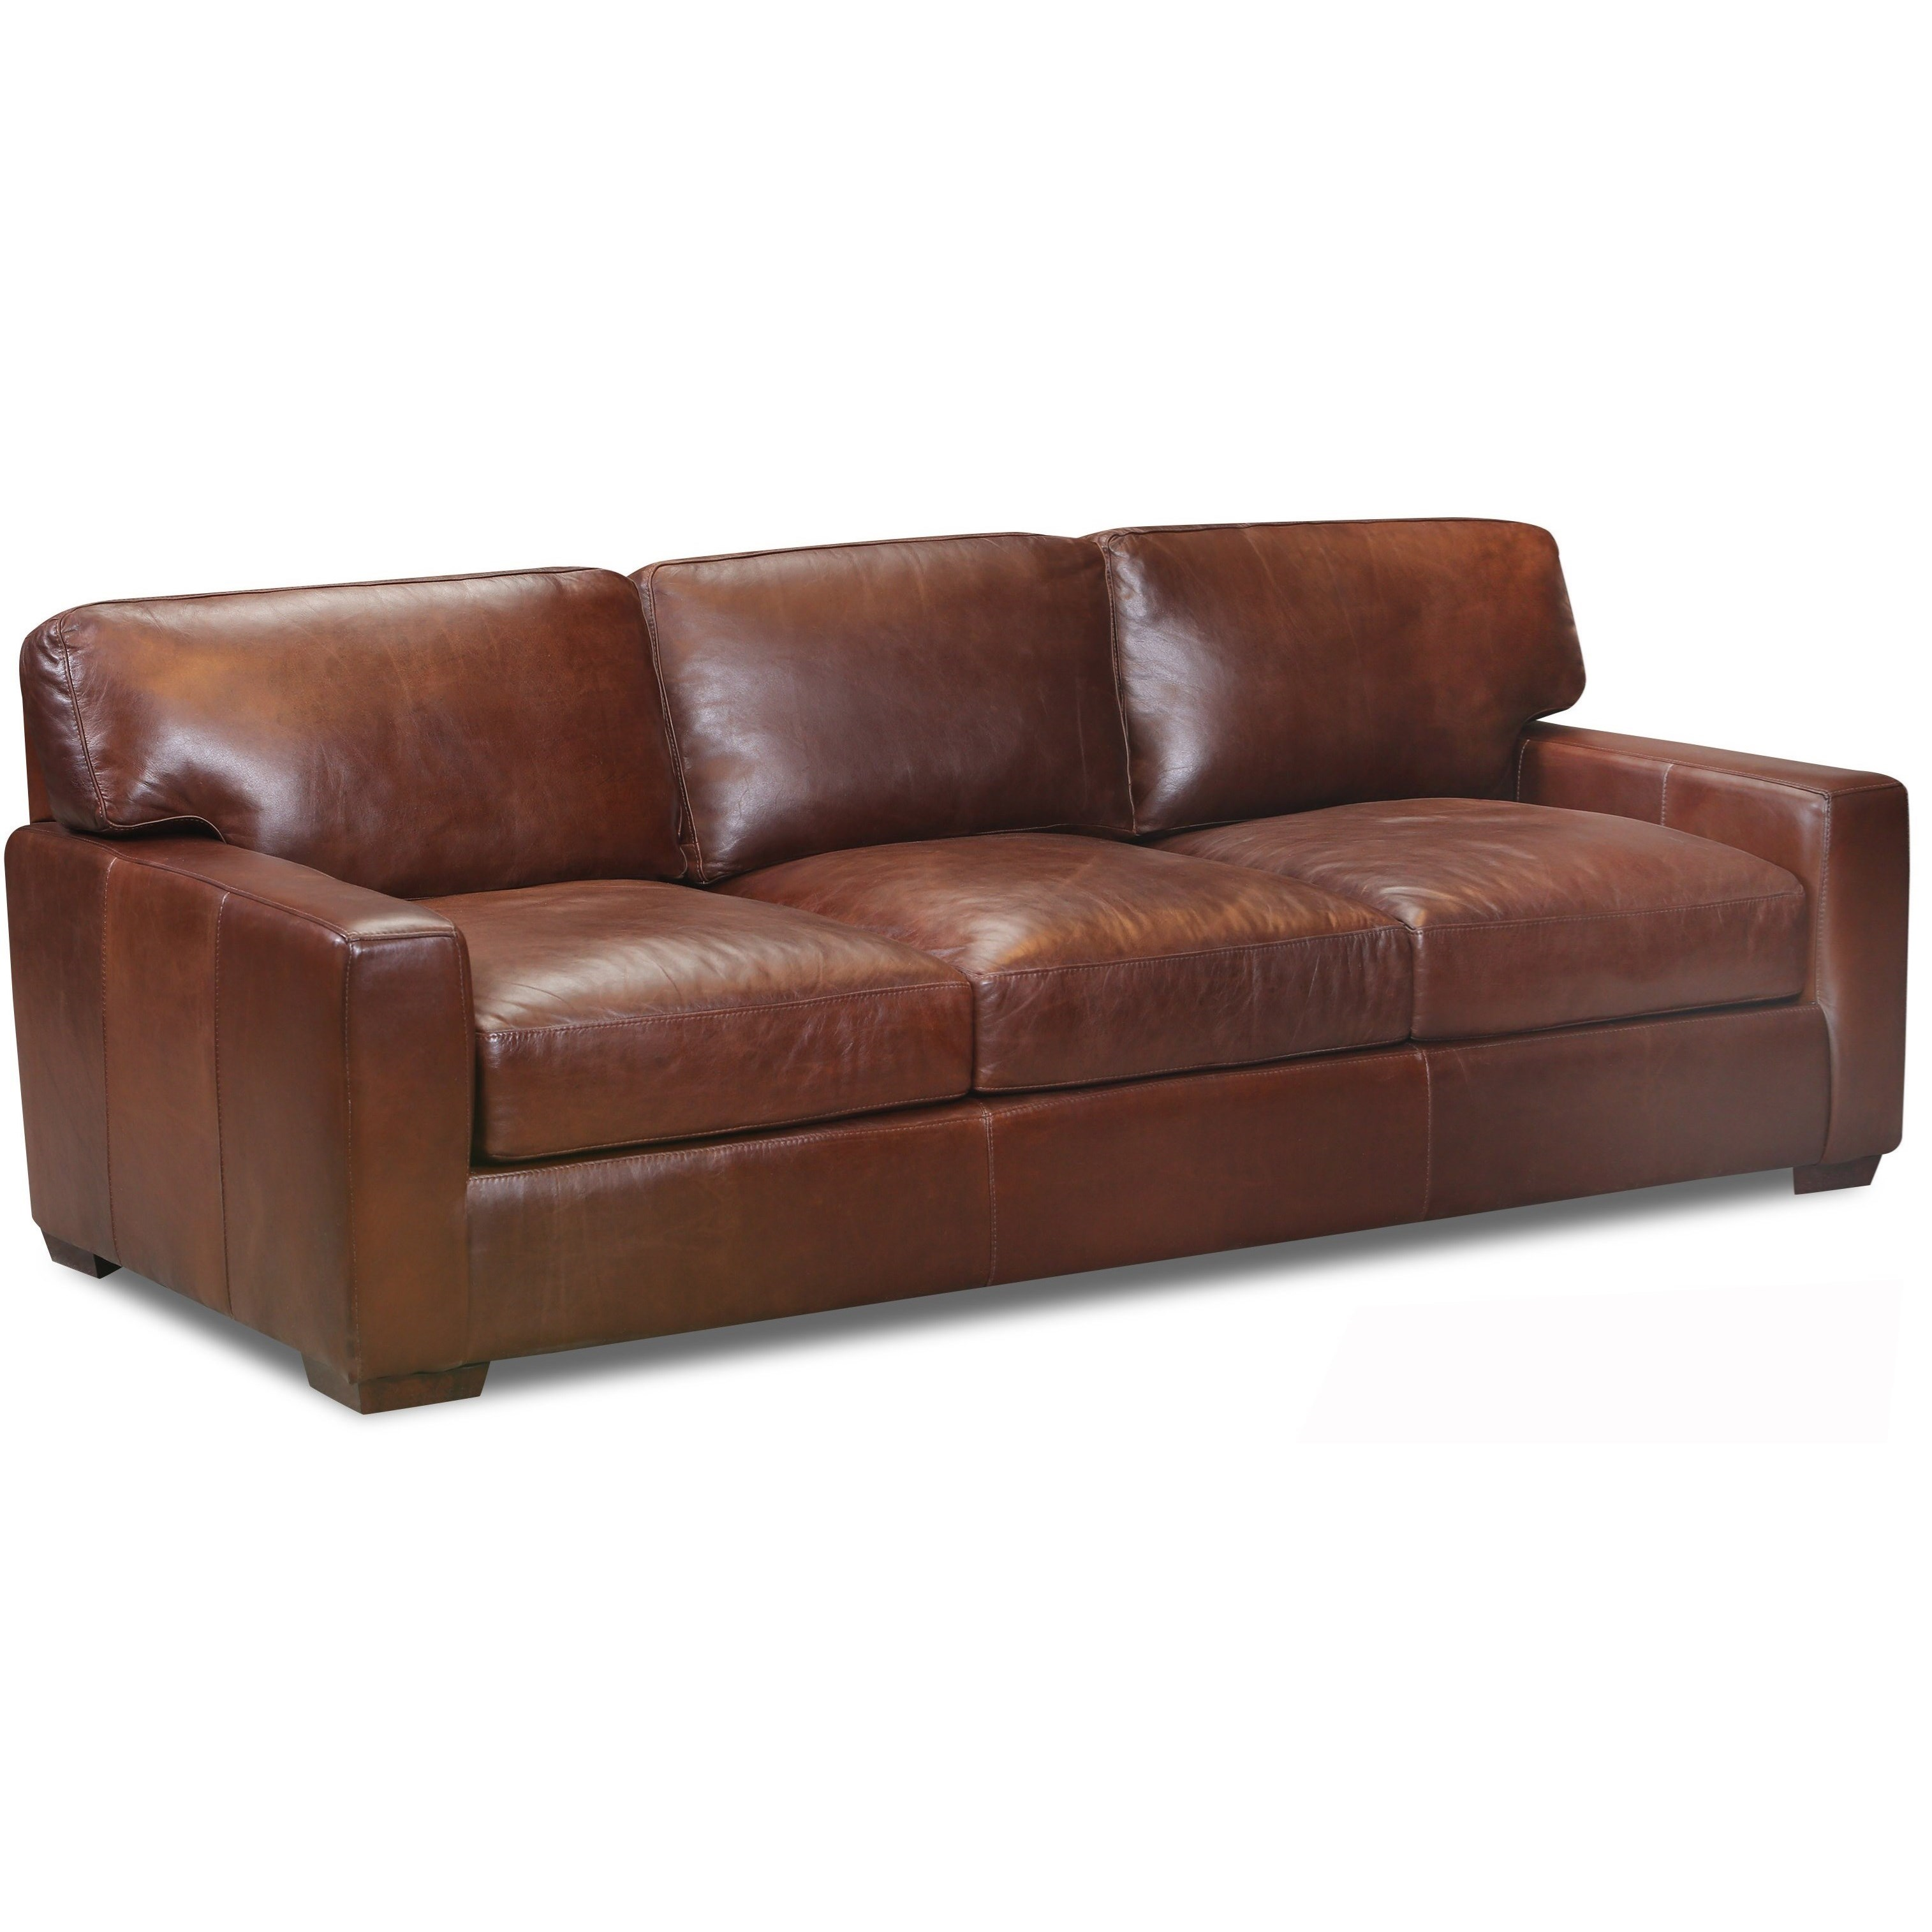 9240 Top Grain Leather Sofa by USA Premium Leather at Dream Home Interiors